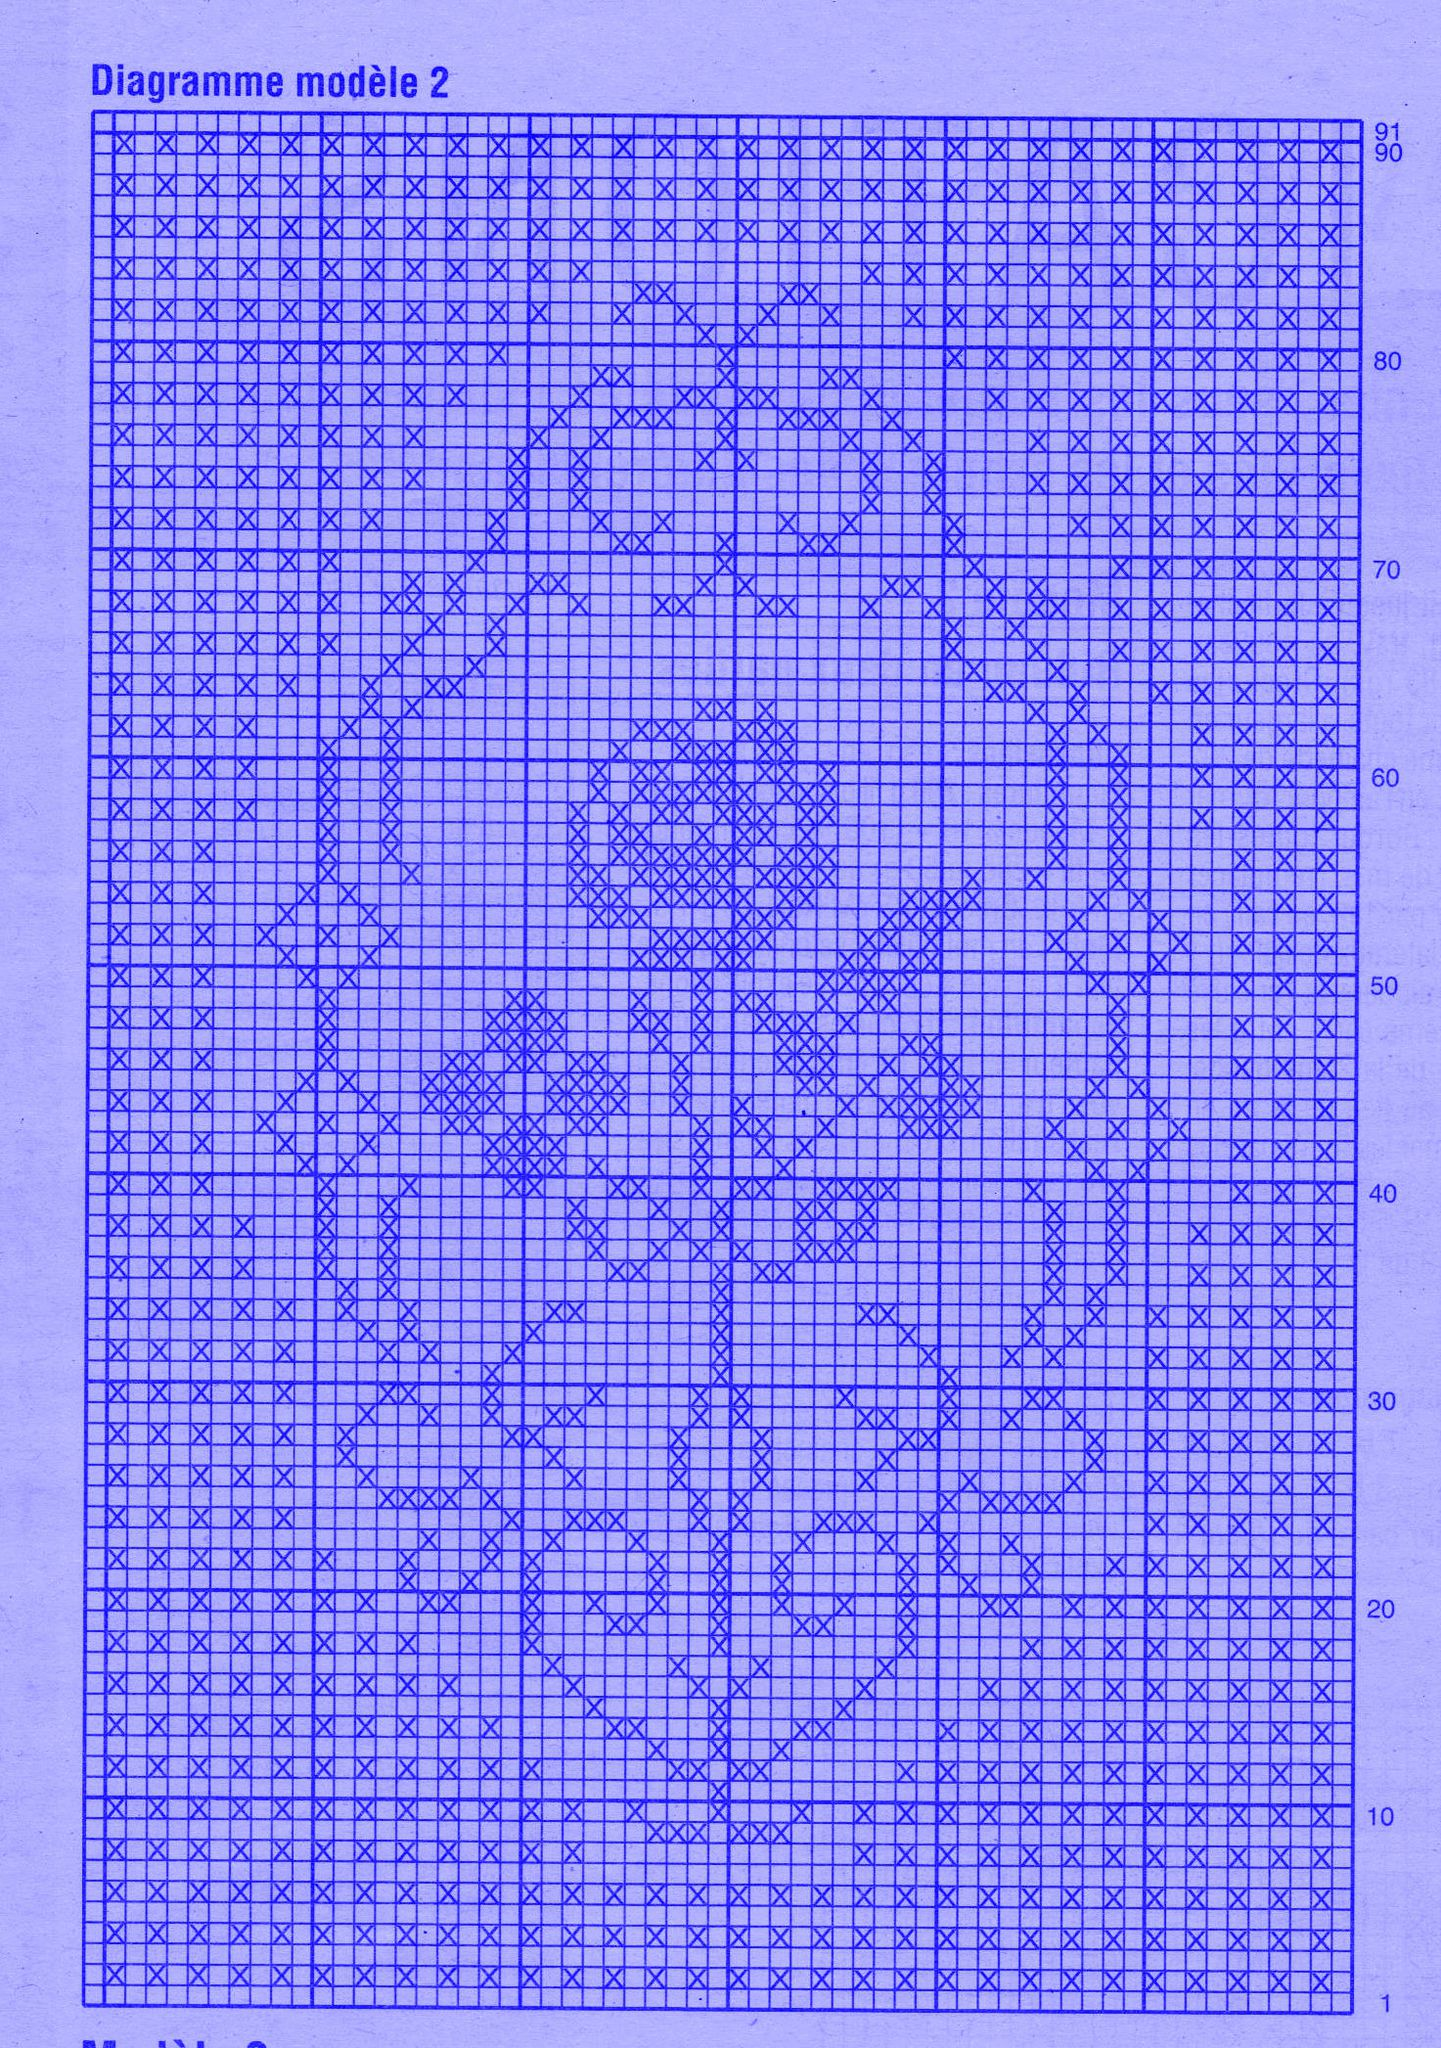 image related image with diagramme rideau crochet gratuit